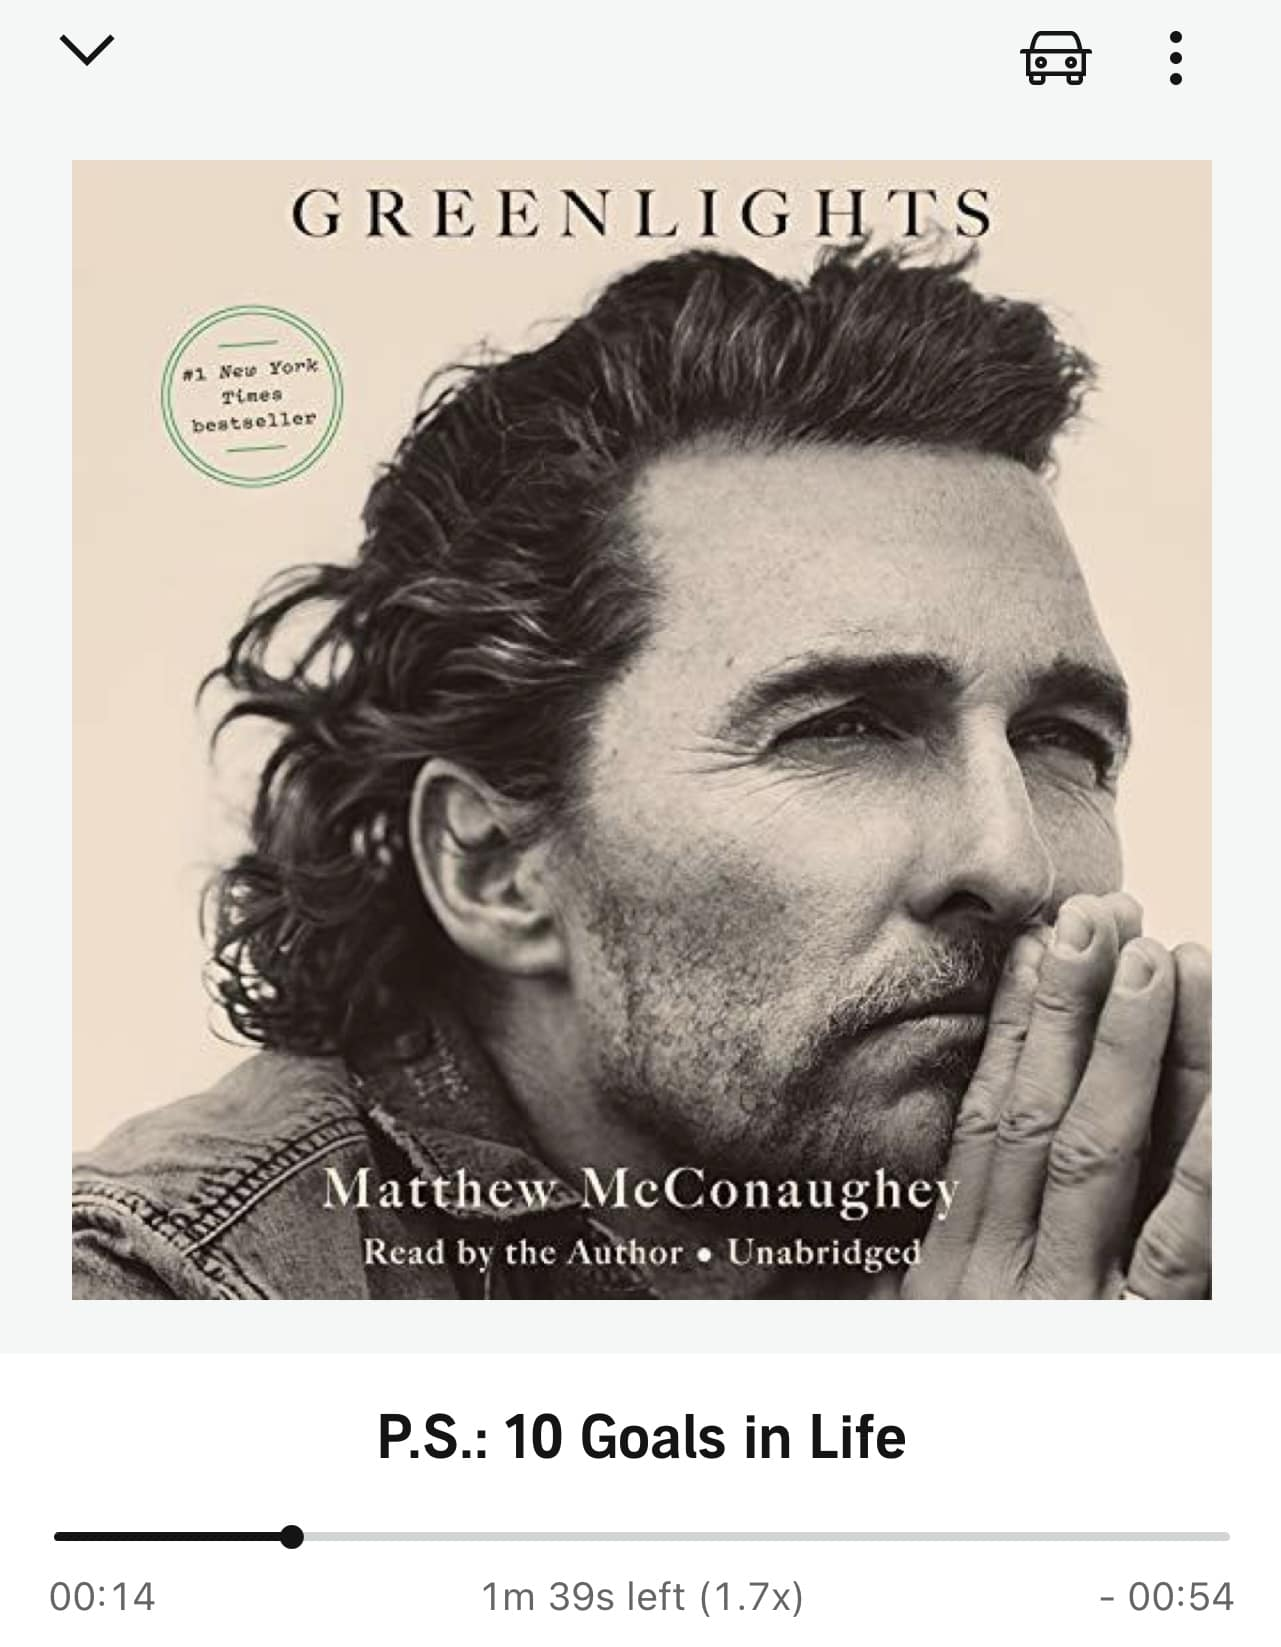 The audible version cover of Matthew McConaughey's book Greenlights